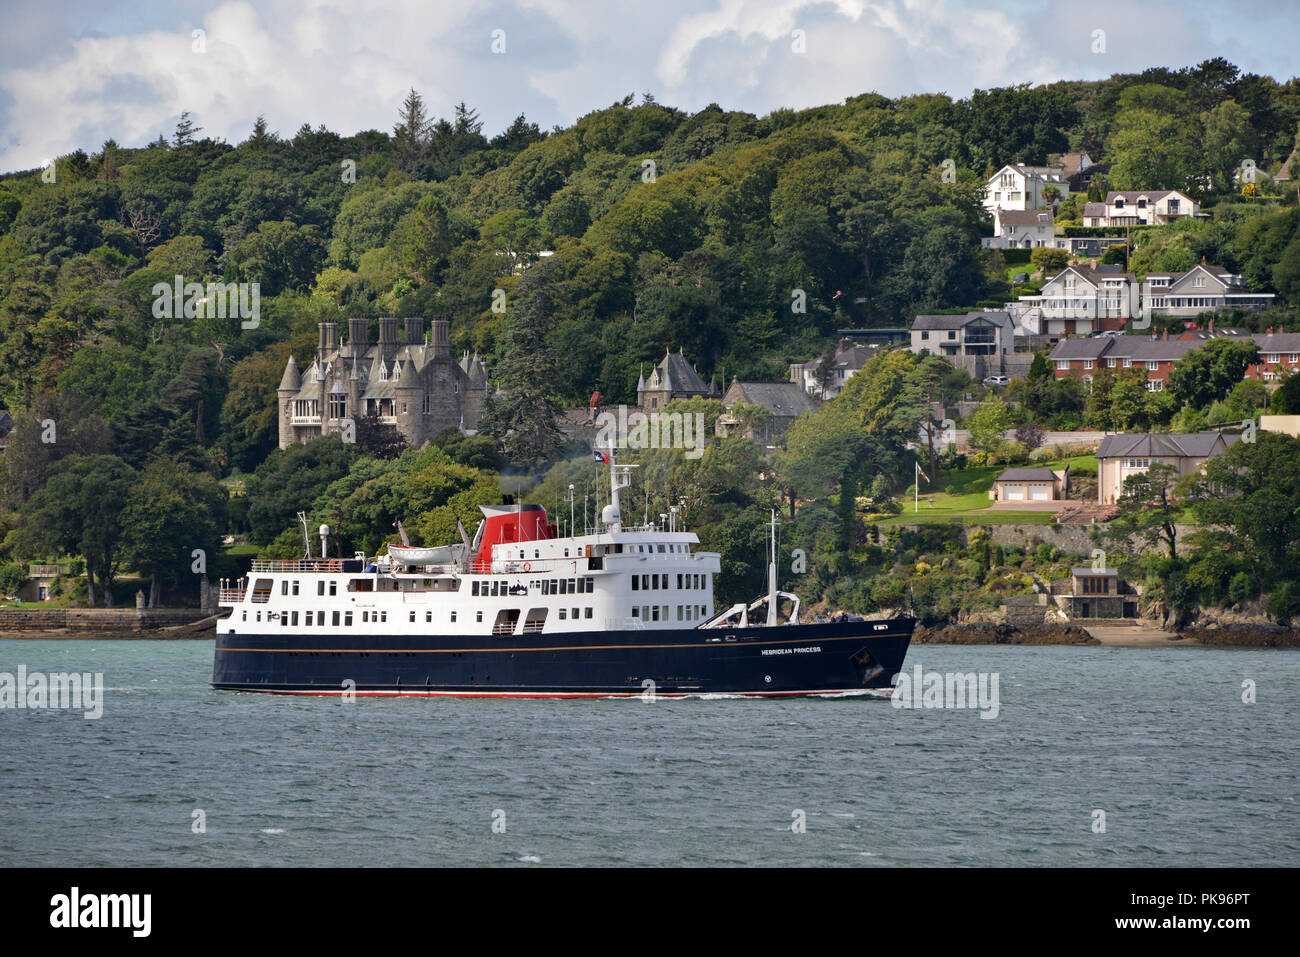 Hebridean Princess cruising the Menai Straits with the enchanting French-style Château Rhianfa Hotel astern - Stock Image